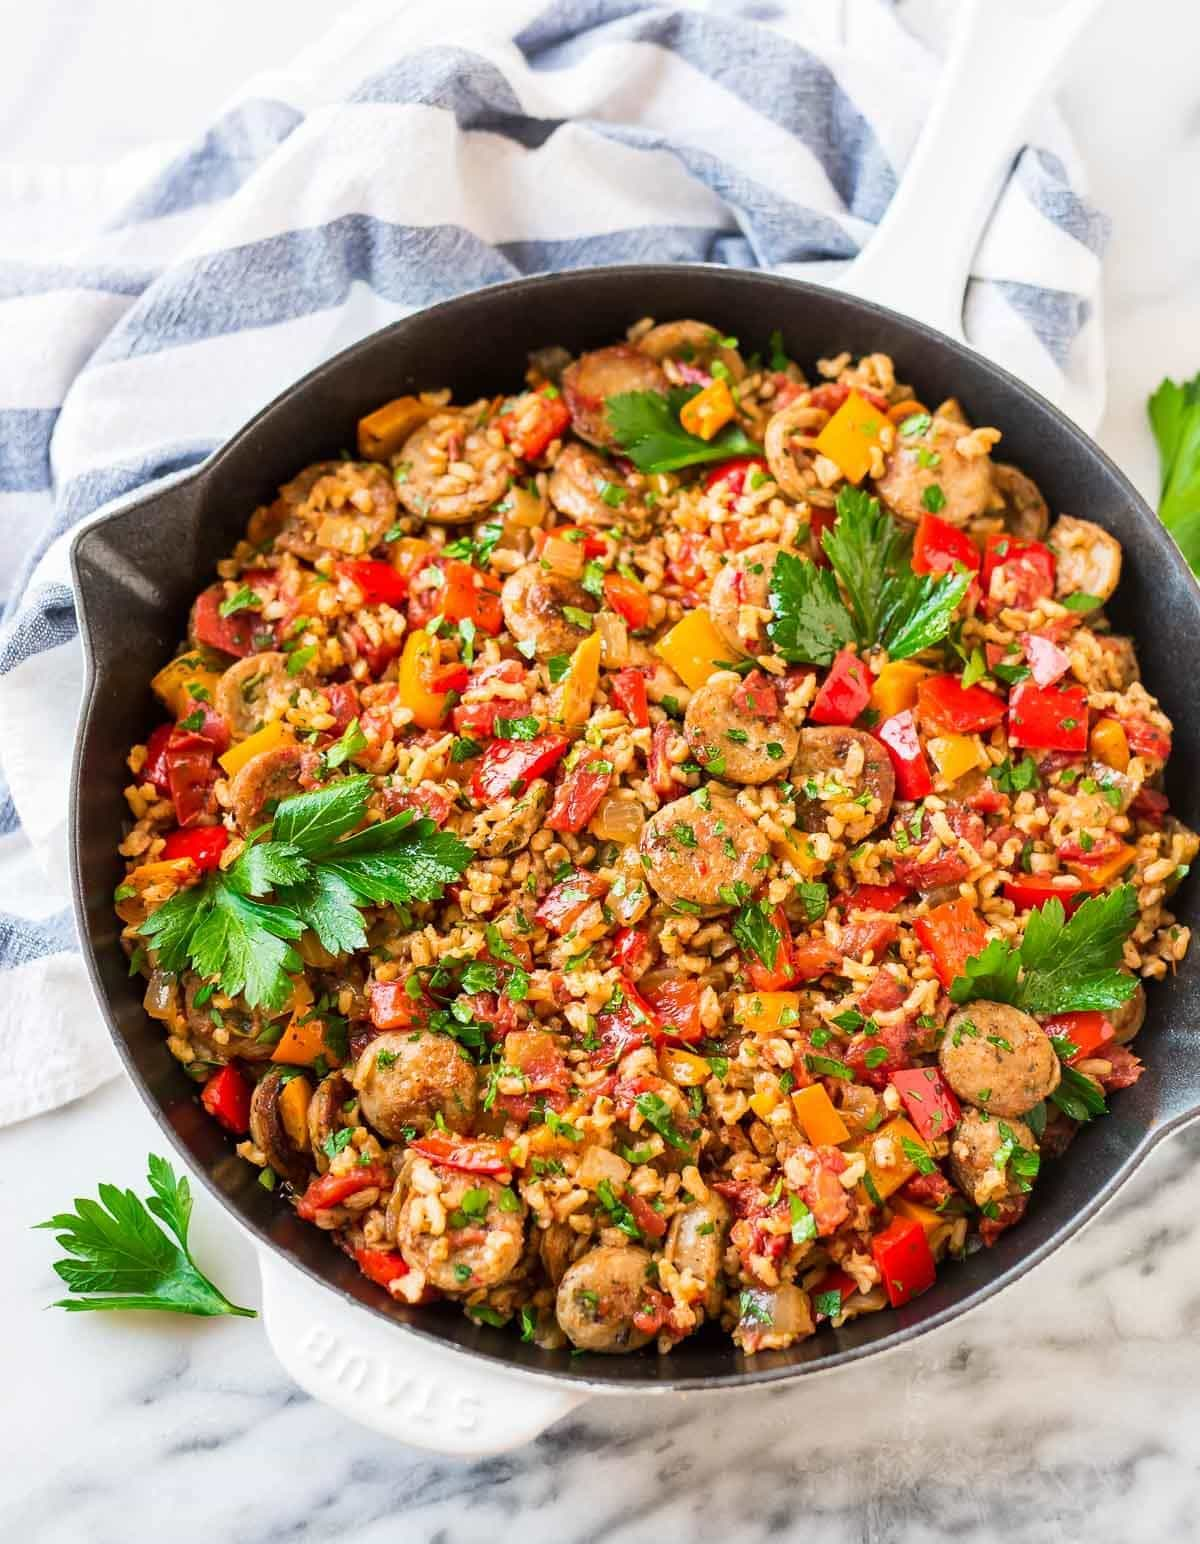 One pan sausage and rice casserole with bell peppers and fresh herbs